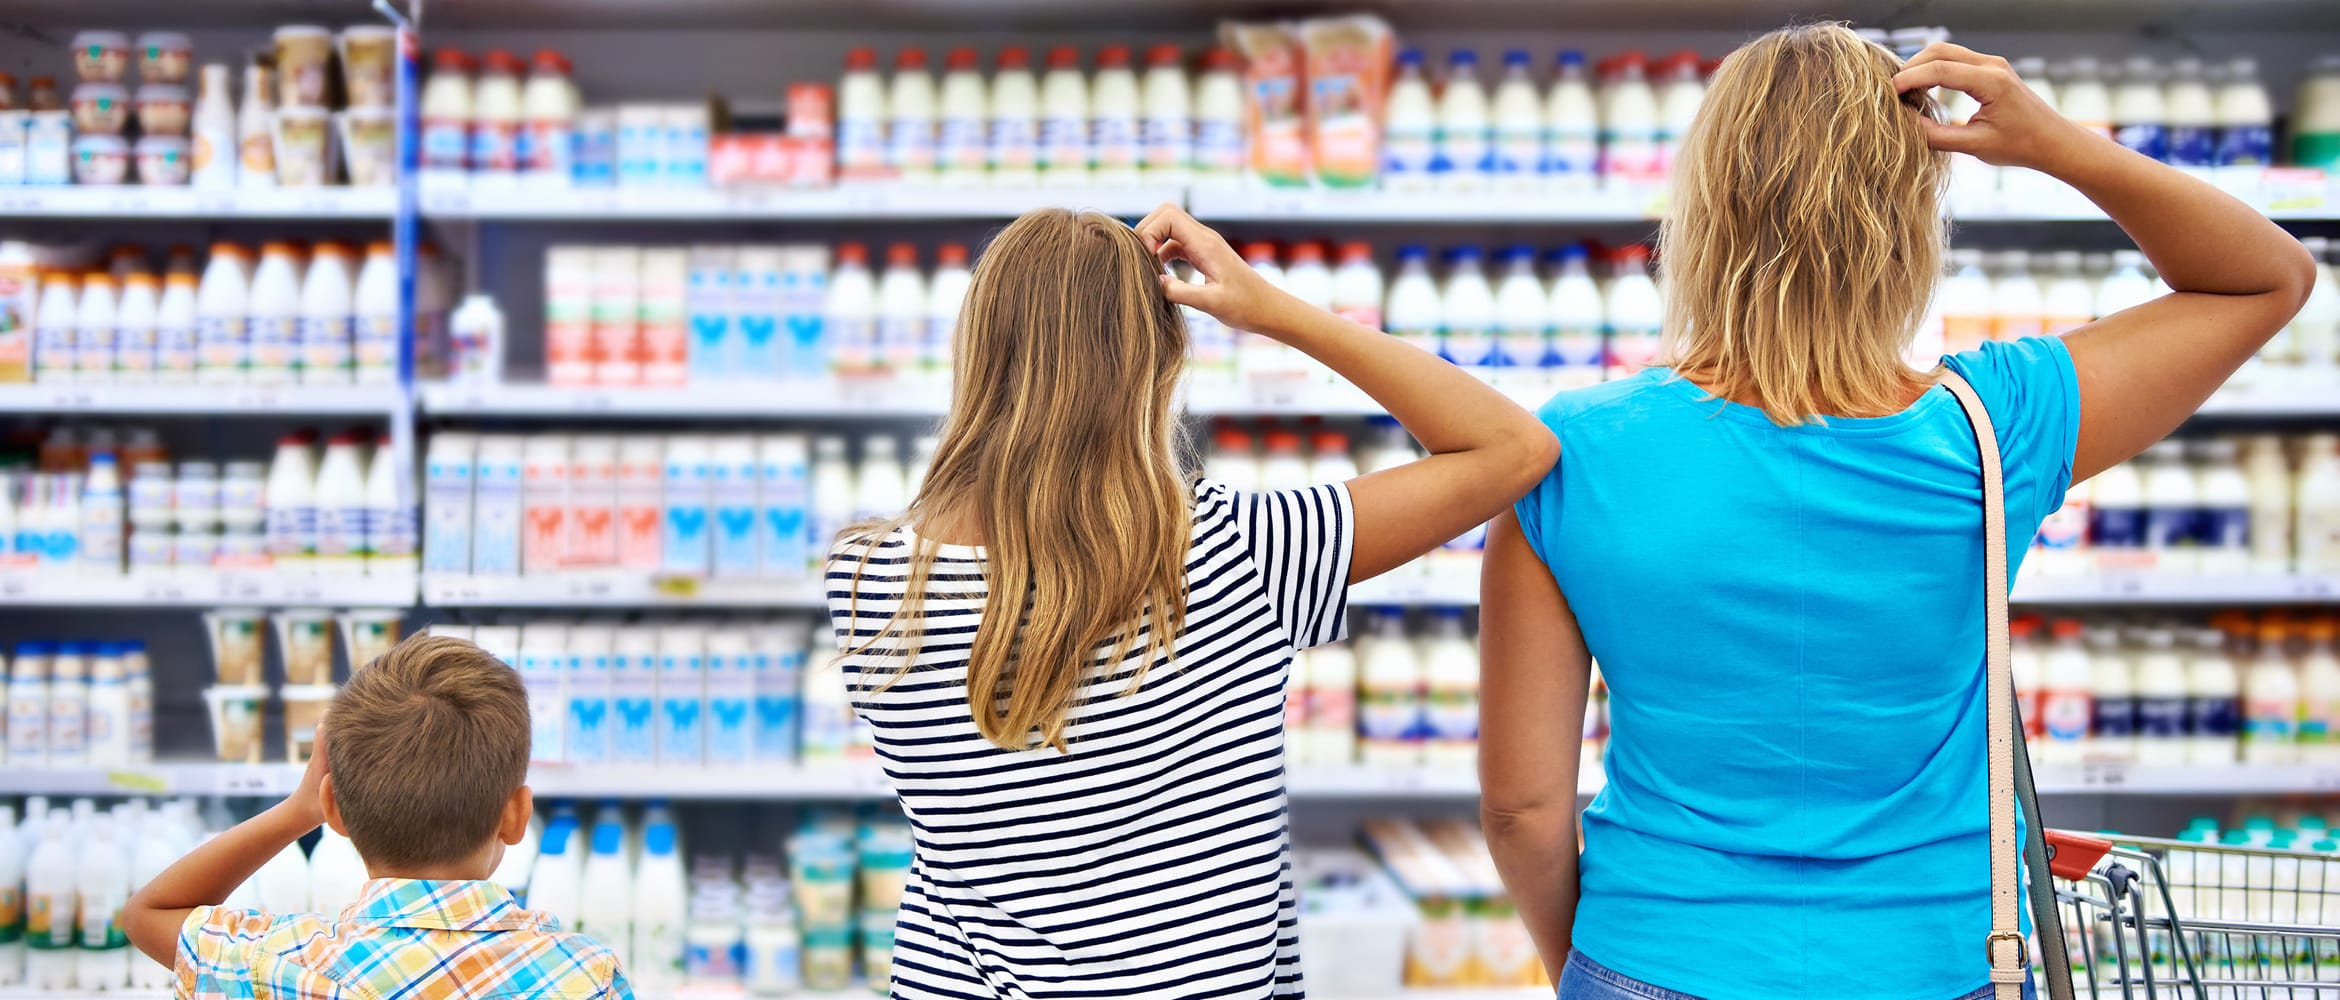 A family scratch their heads looking at a supermarket shelf to illustrate retail customer pain points